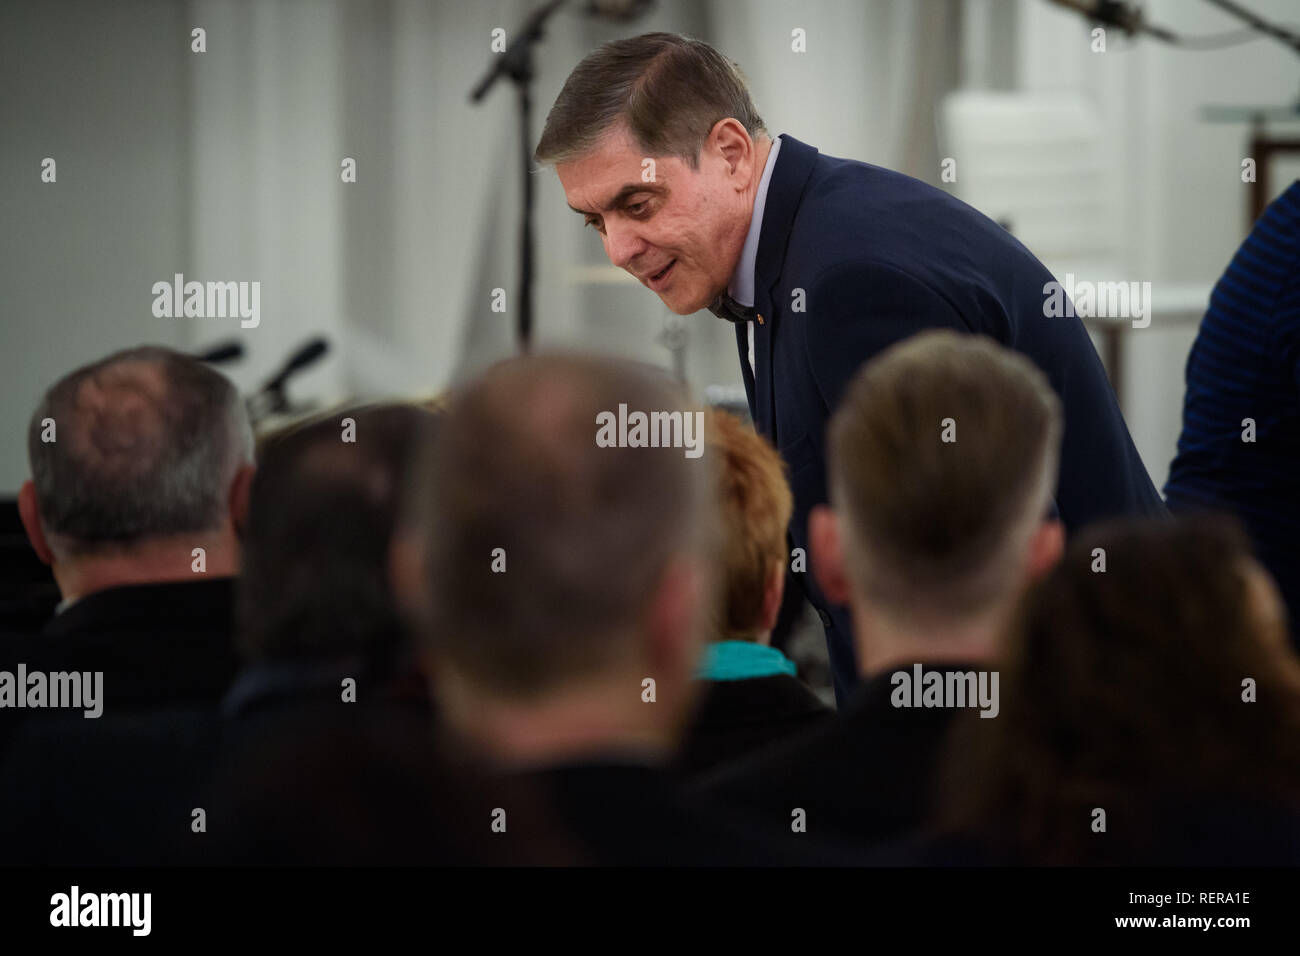 Berlin, Germany. 22nd Jan, 2019. Romani Rose, Chairman of the Central Council of Sinti and Roma, comes to a cultural evening of Sinti, Roma and Jeni at Bellevue Castle, the official residence of the Federal President. Credit: Gregor Fischer/dpa/Alamy Live News Stock Photo